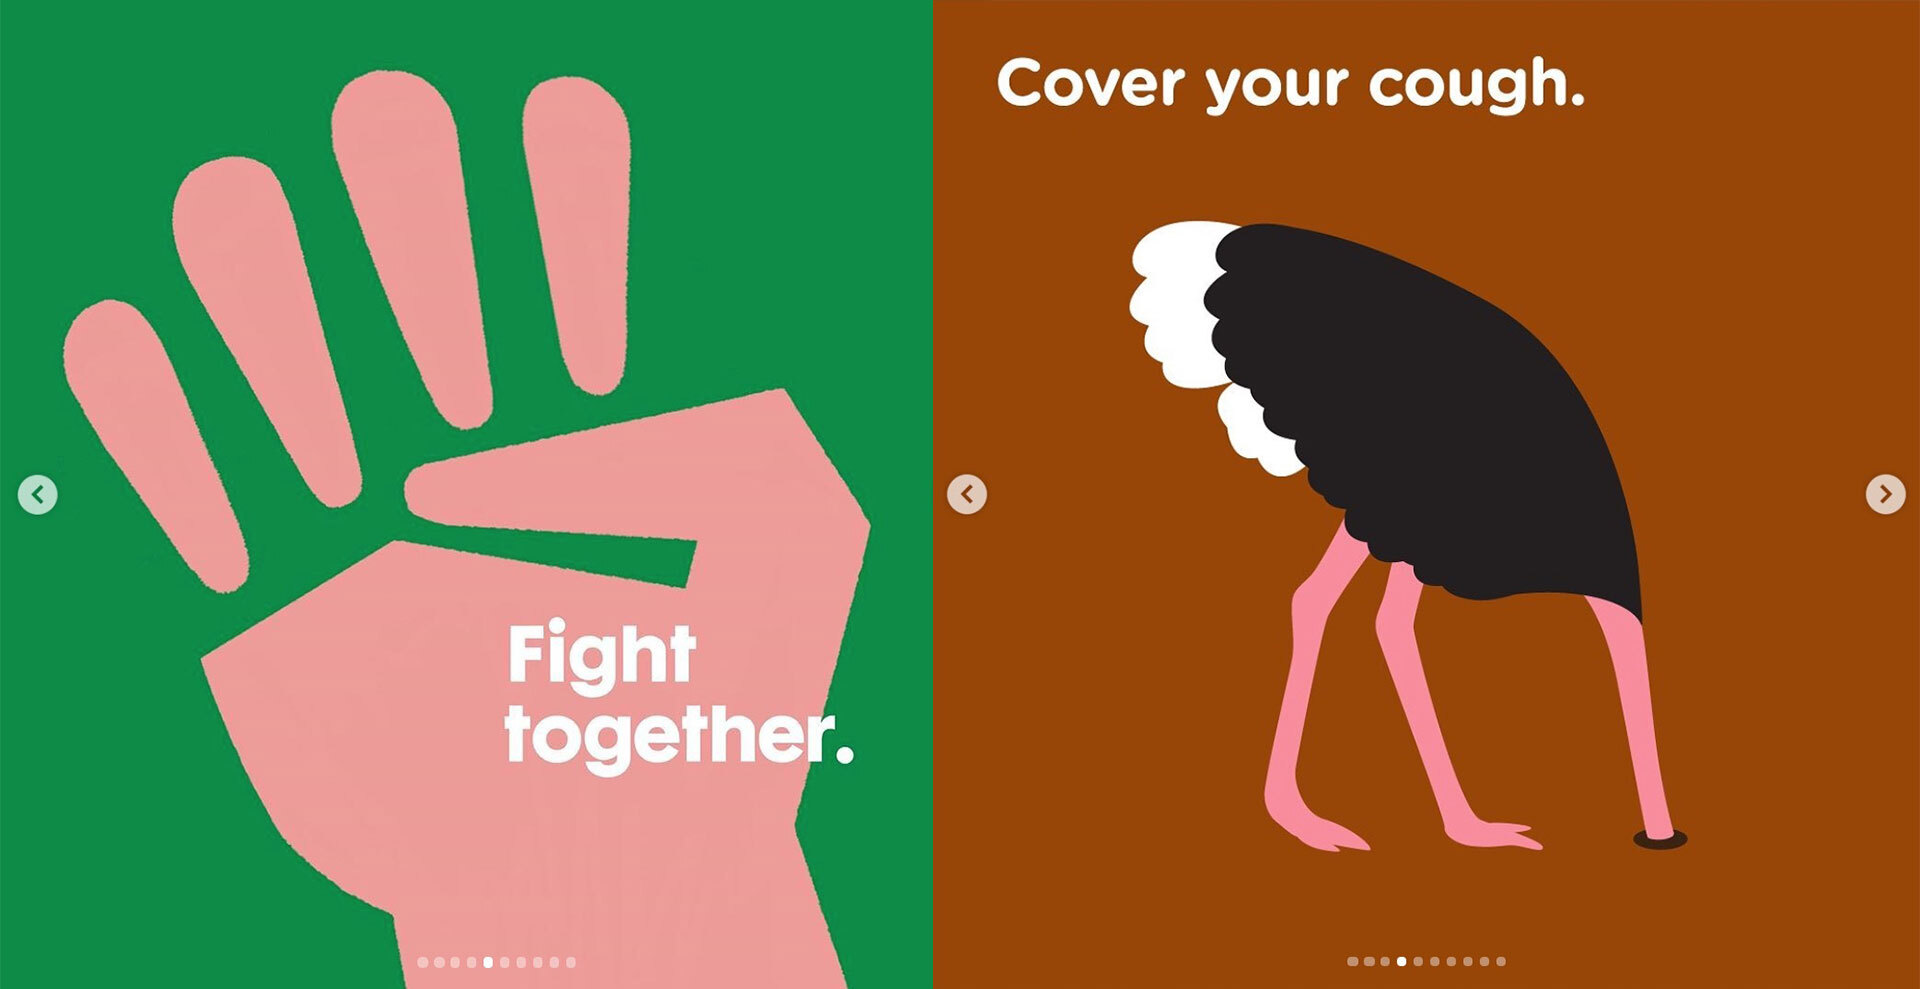 Light-Hearted Illustrations for Serious COVID-19 Awareness